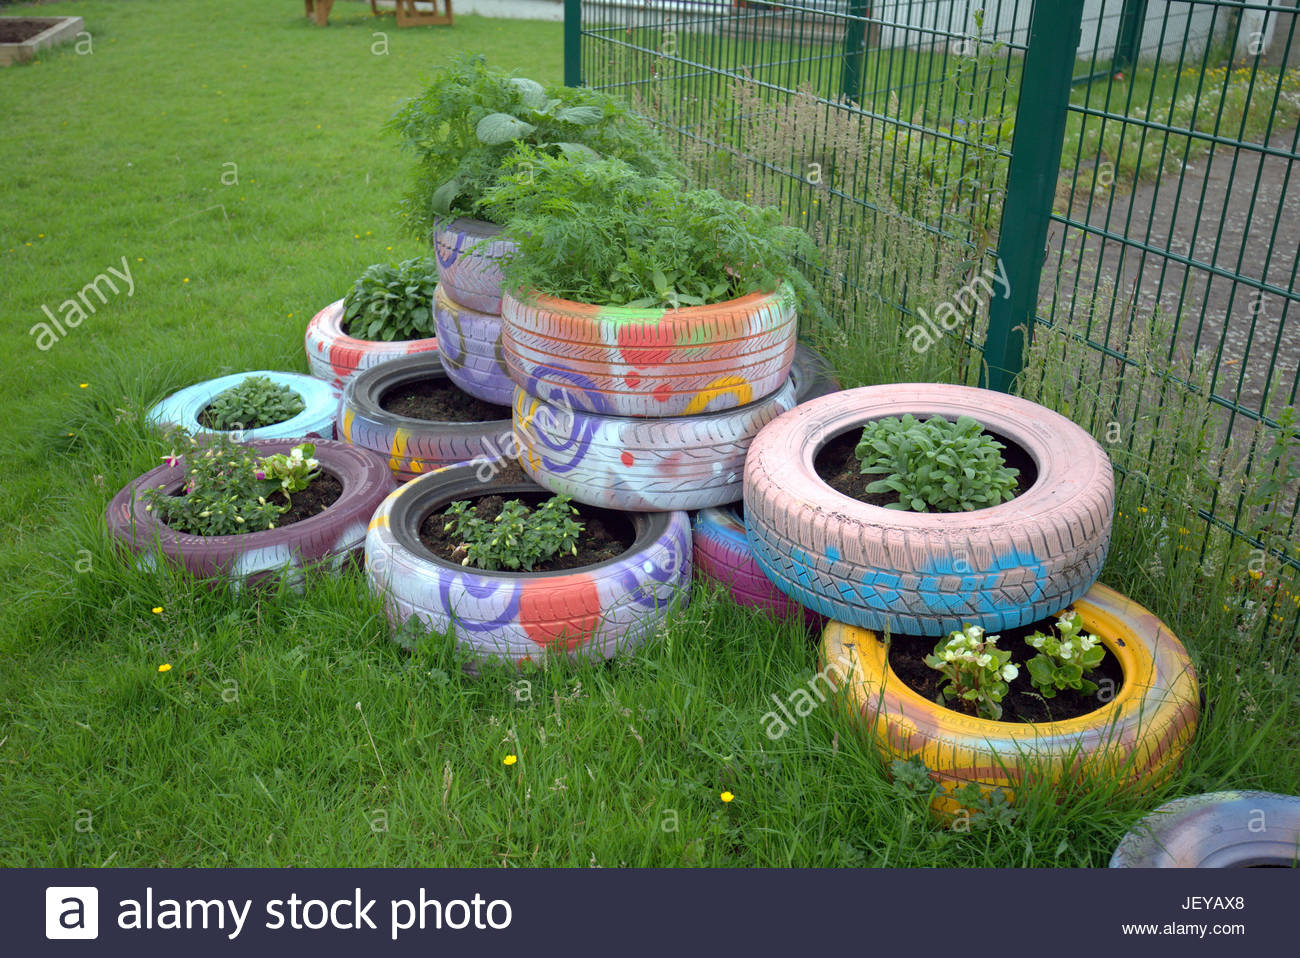 recycled tires tyres used as plant pots upcycling ideas how to use everyday objects as design features in a garden - Garden Ideas Using Tyres